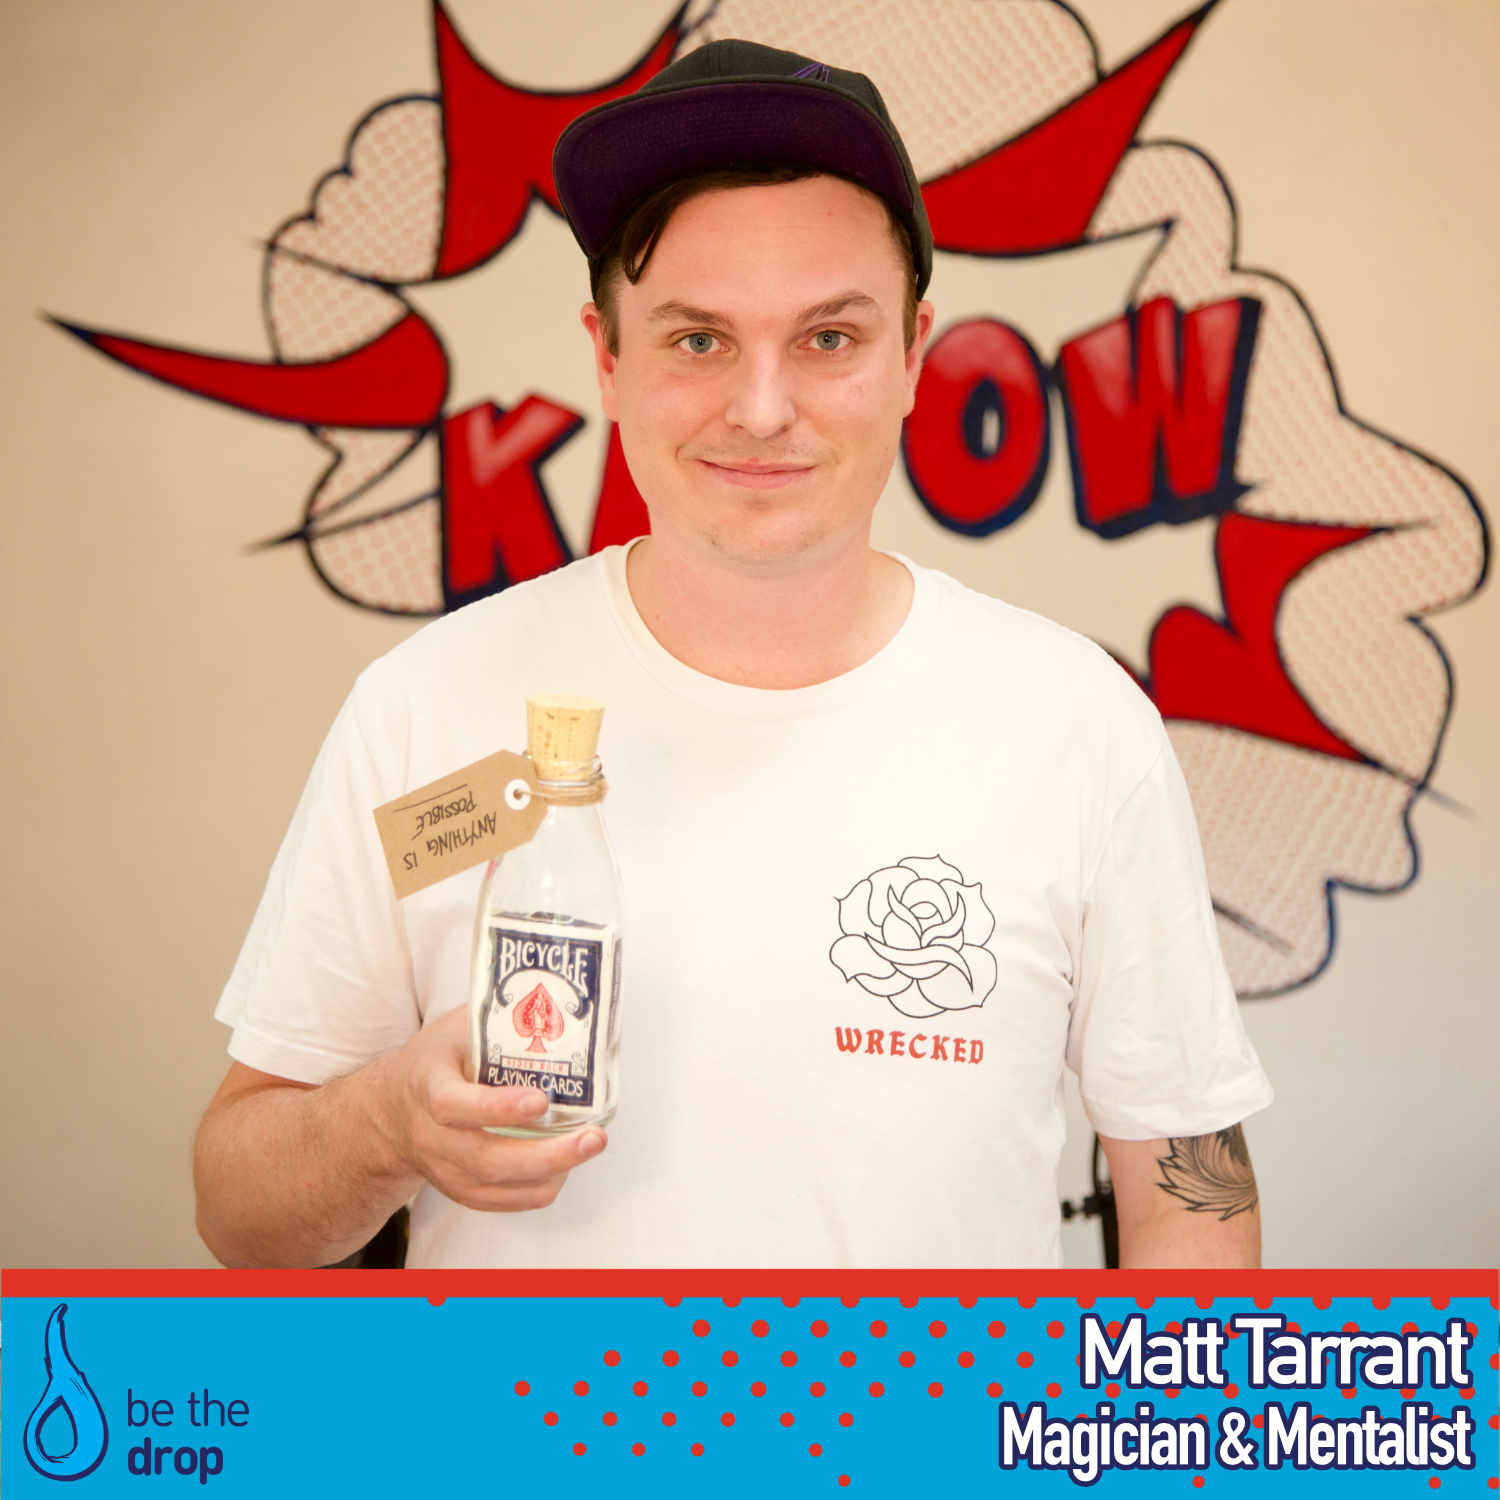 Journey Of A Professional Magician With Matt Tarrant [Podcast]